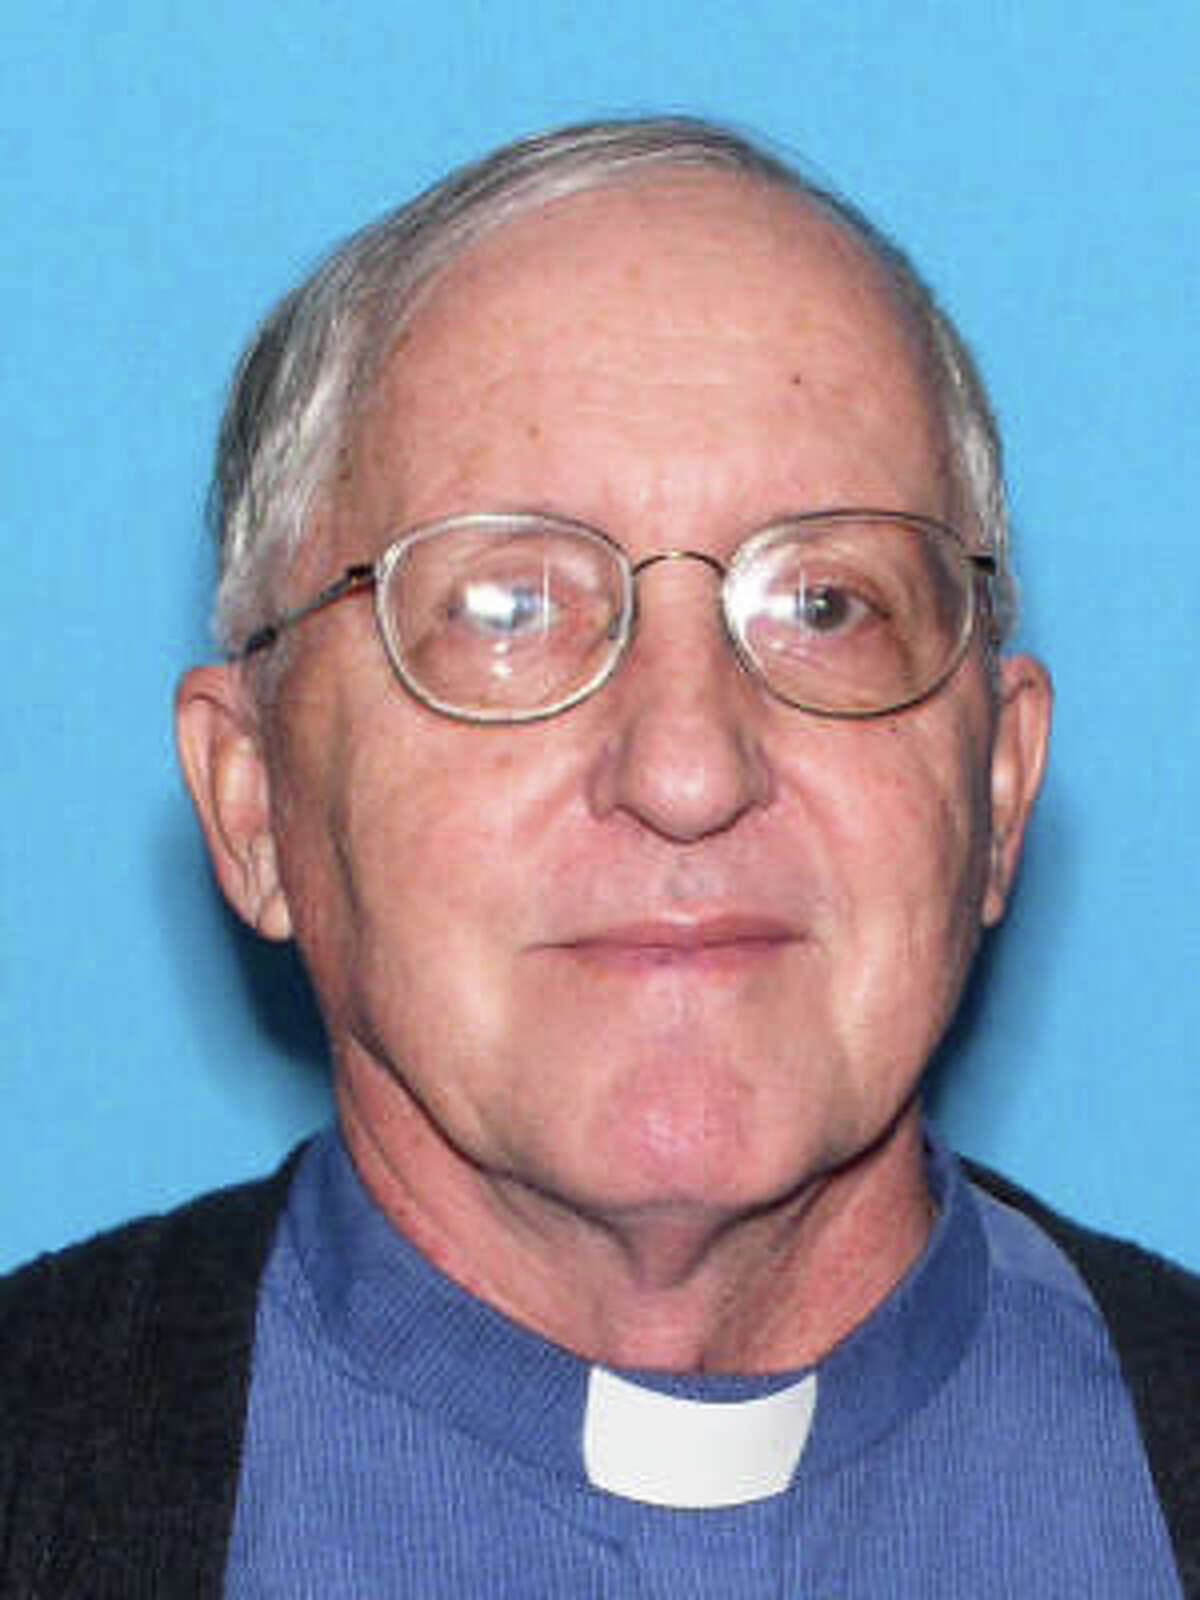 This photo provided by St. Johns County Sheriffs Office shows Father Rene Wayne Robert, a Roman Catholic priest in Florida whose body was found in rural east Georgia, who dedicated his life to working with prisoners and society's downtrodden. He was reported missing April 12 after church officials became concerned when he missed an appointment. (FHSMV/St. Johns County Sheriffs Office via AP) ORG XMIT: NY113